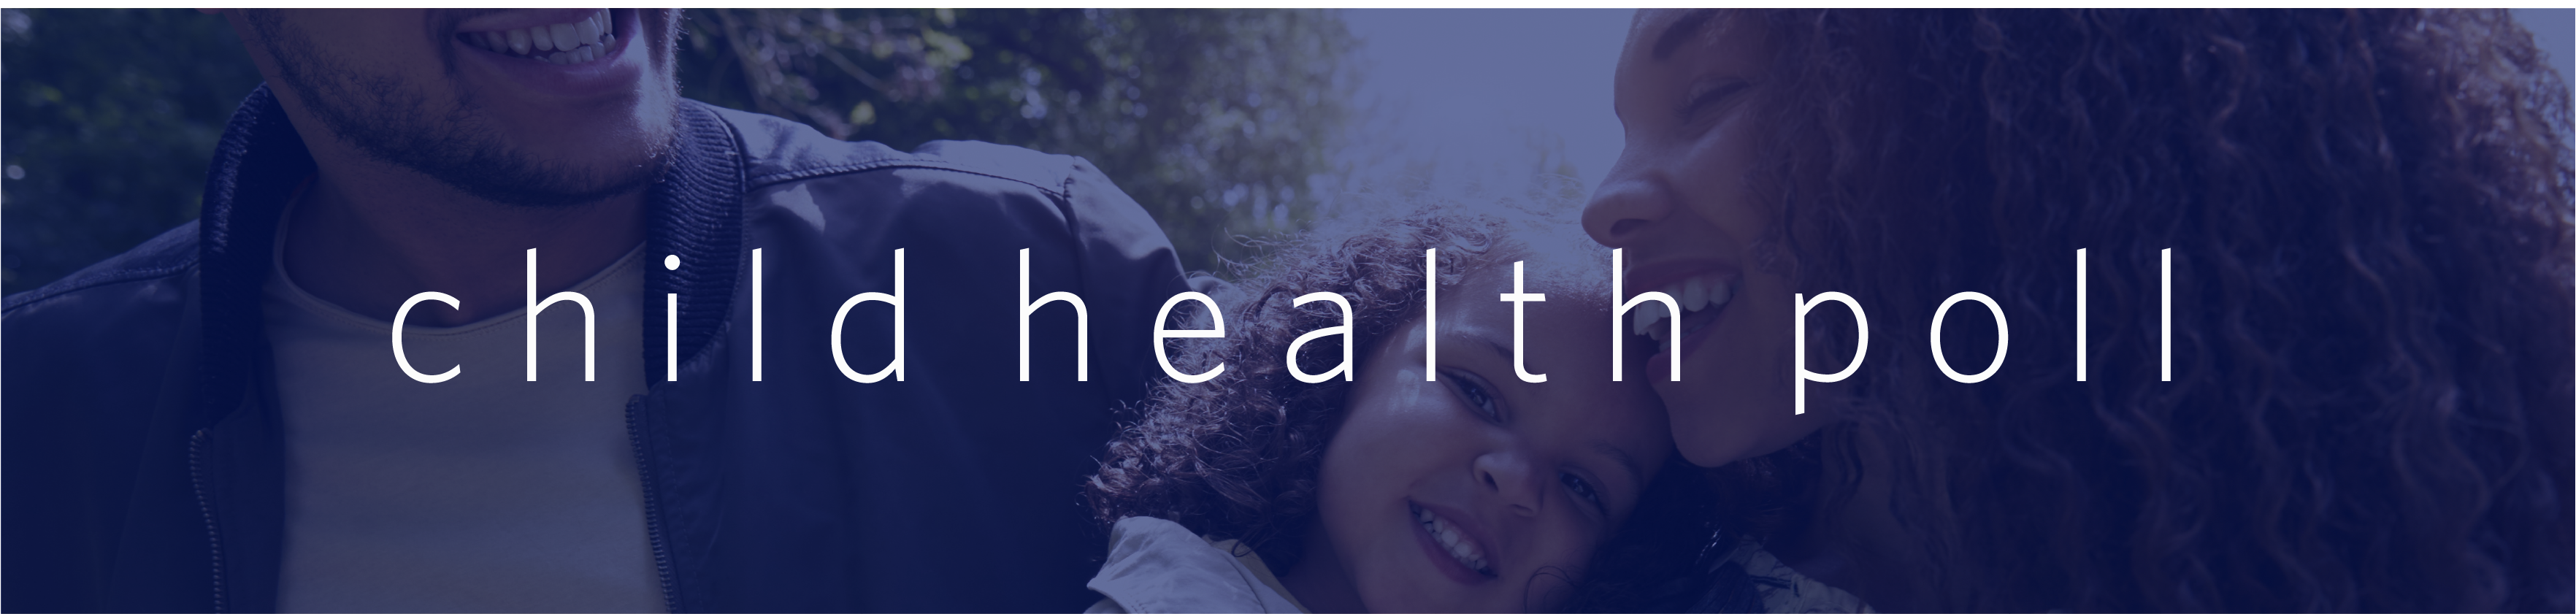 child health banner@3x.png